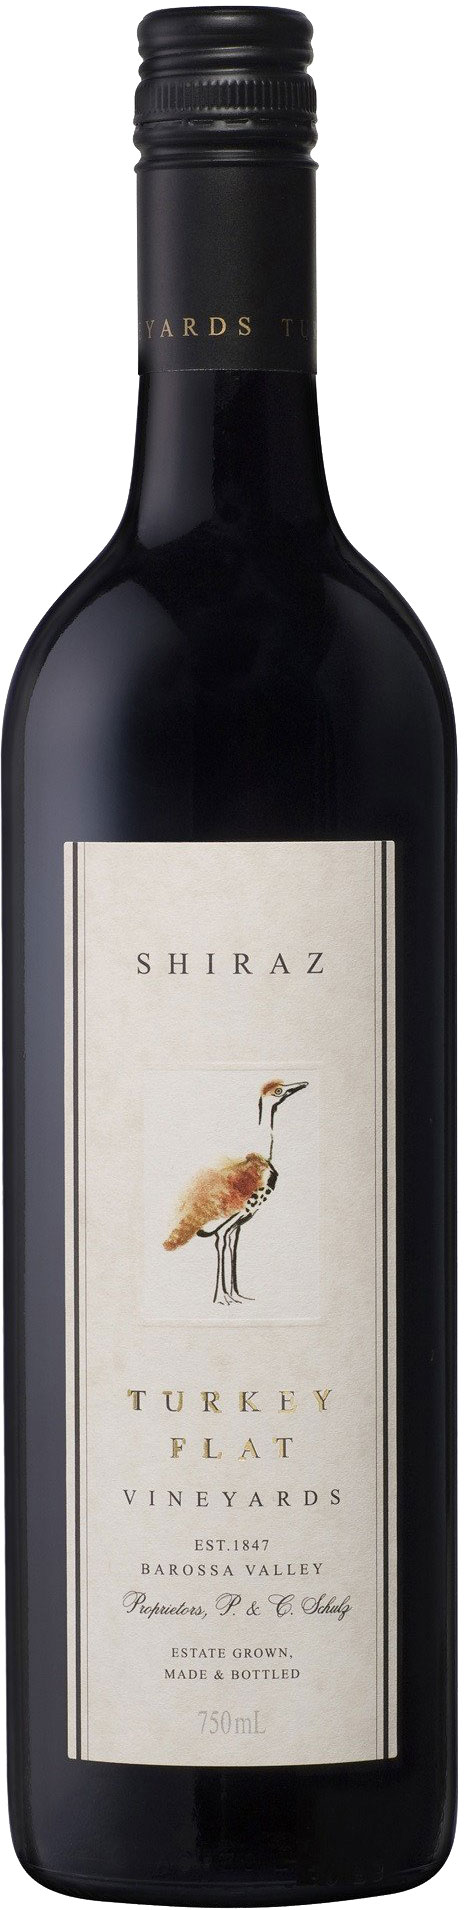 Turkey Flat - Shiraz 2017 75cl Bottle